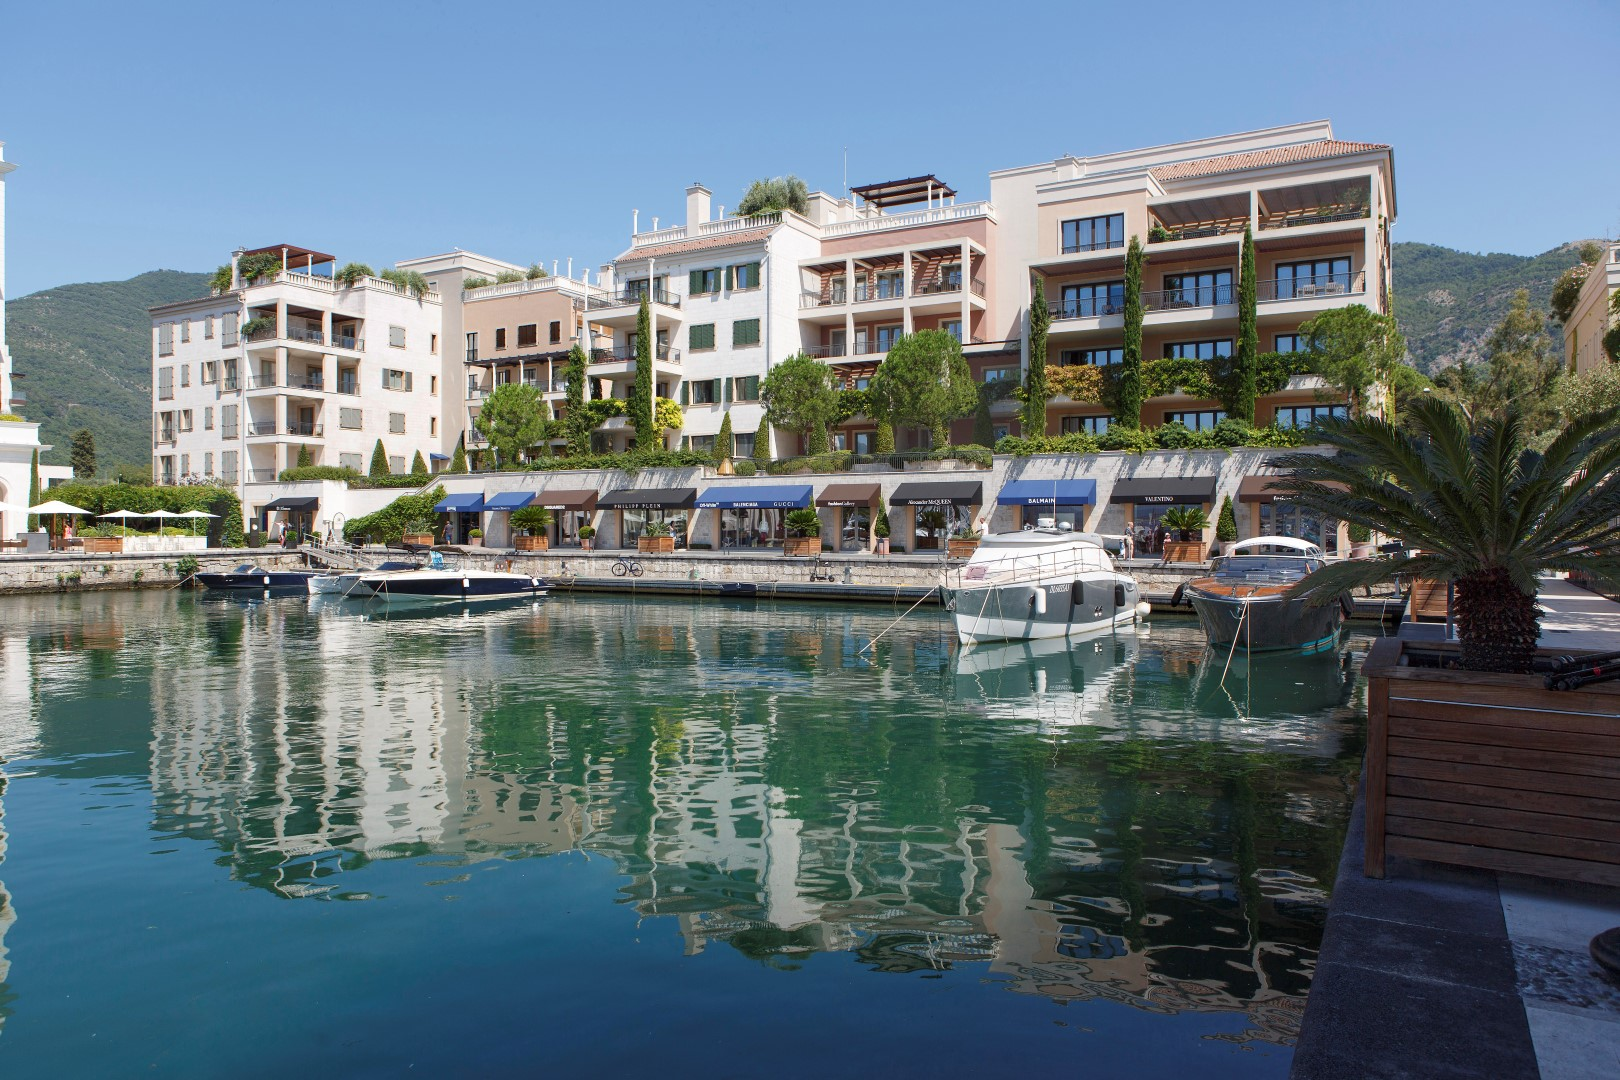 Tivat, Porto Montenegro – two-bedroom apartment of 90m2 in Tara Residence